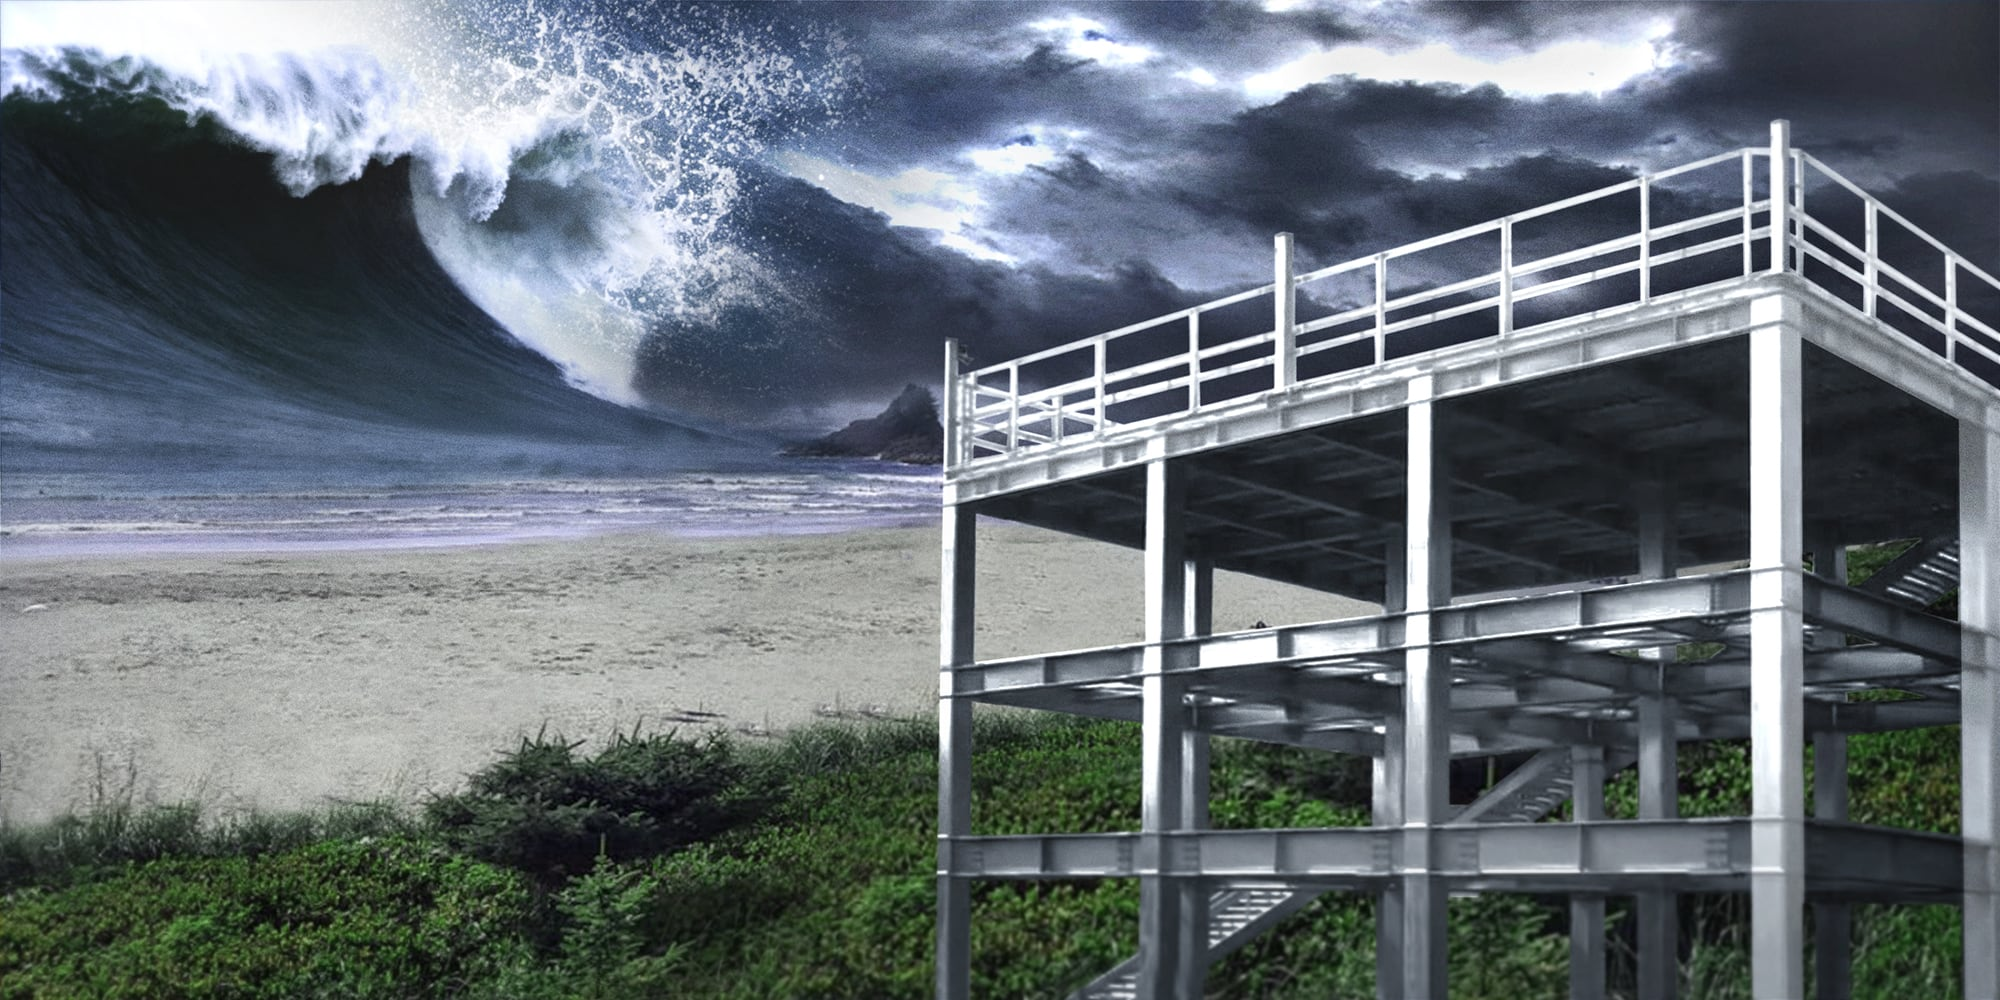 The one thing that could save Tofino